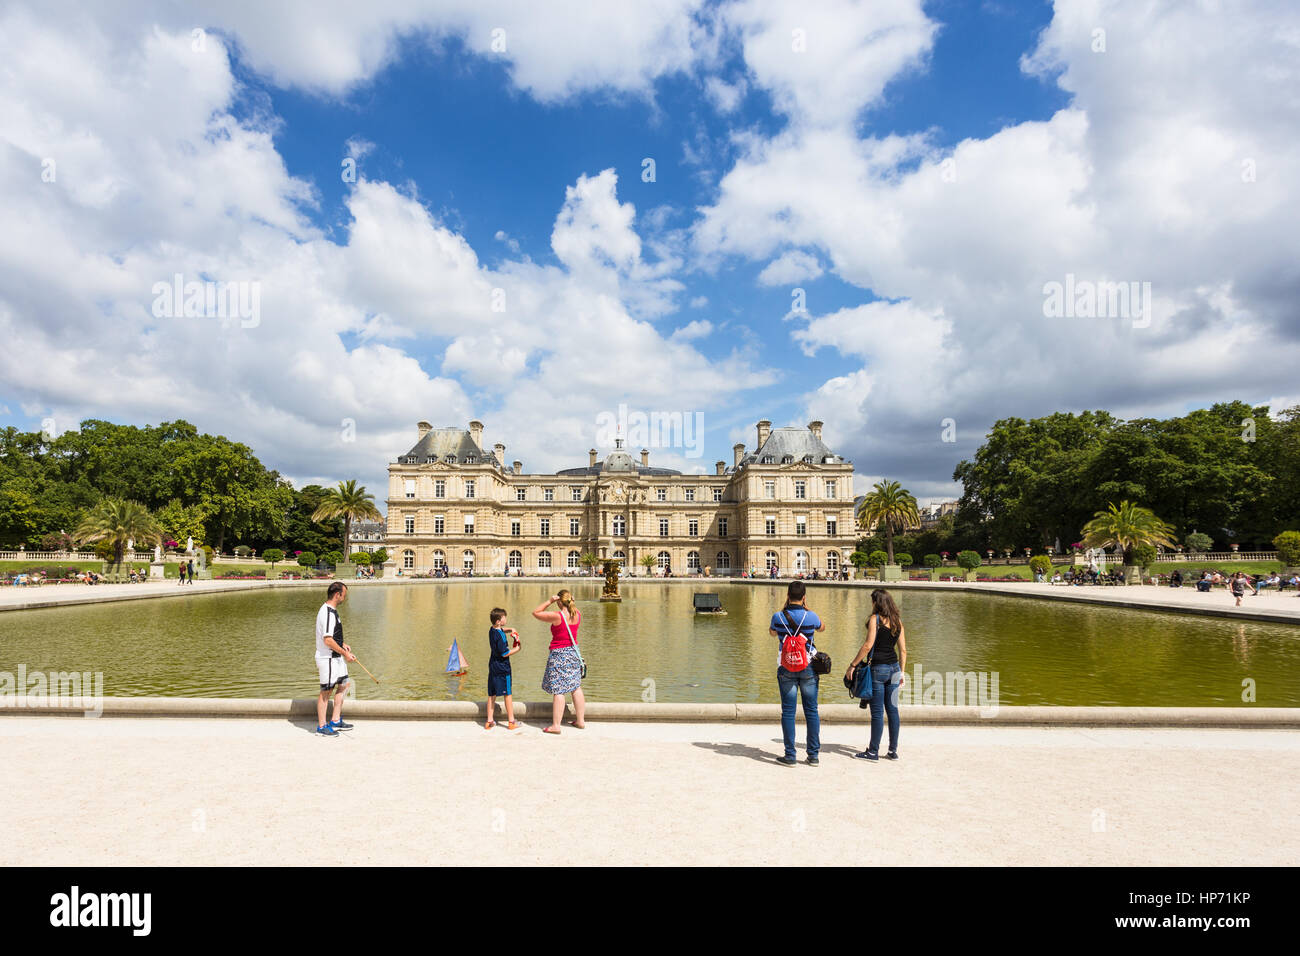 PARIS - AUGUST 6, 2016: Tourist enjoy view of the Luxembourg Palace in Paris, France capital city. - Stock Image